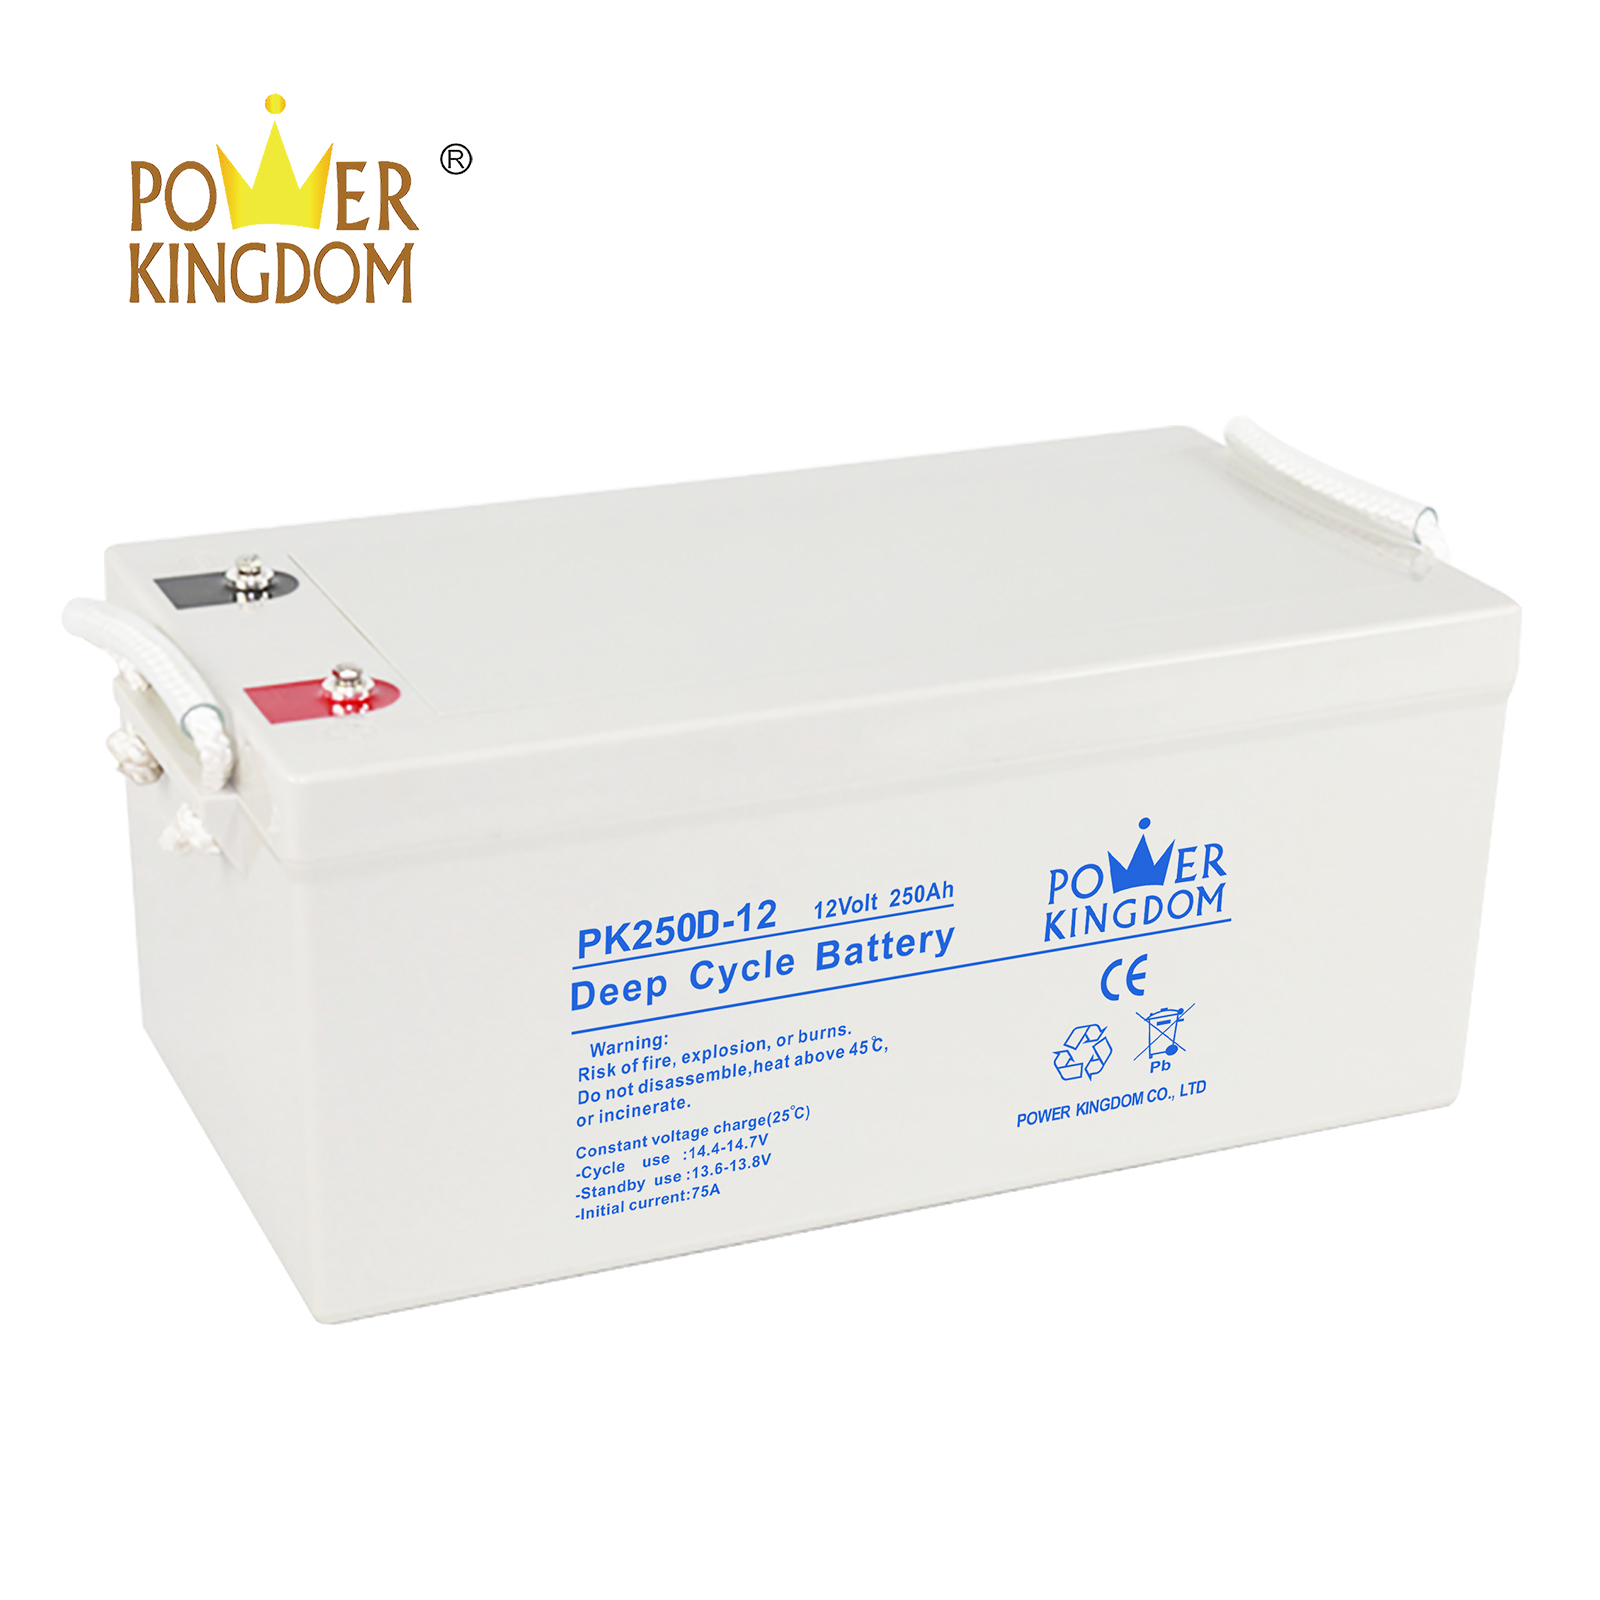 Power Kingdom Top agm 35ah deep cycle battery factory price wind power systems-2